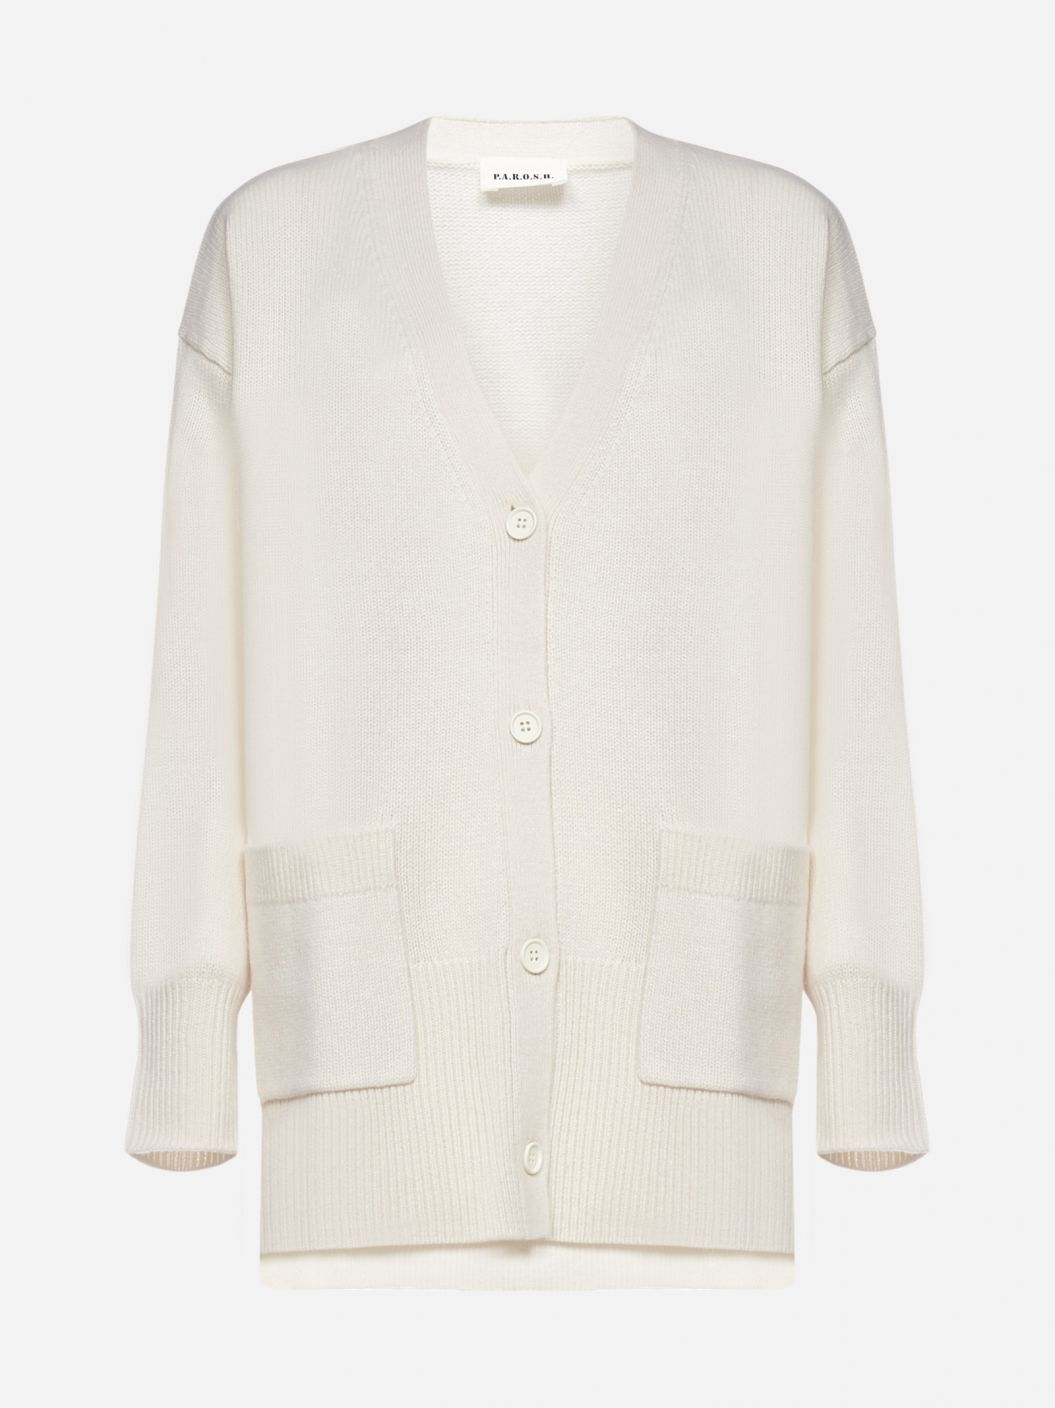 Like wool and cashmere cardigan